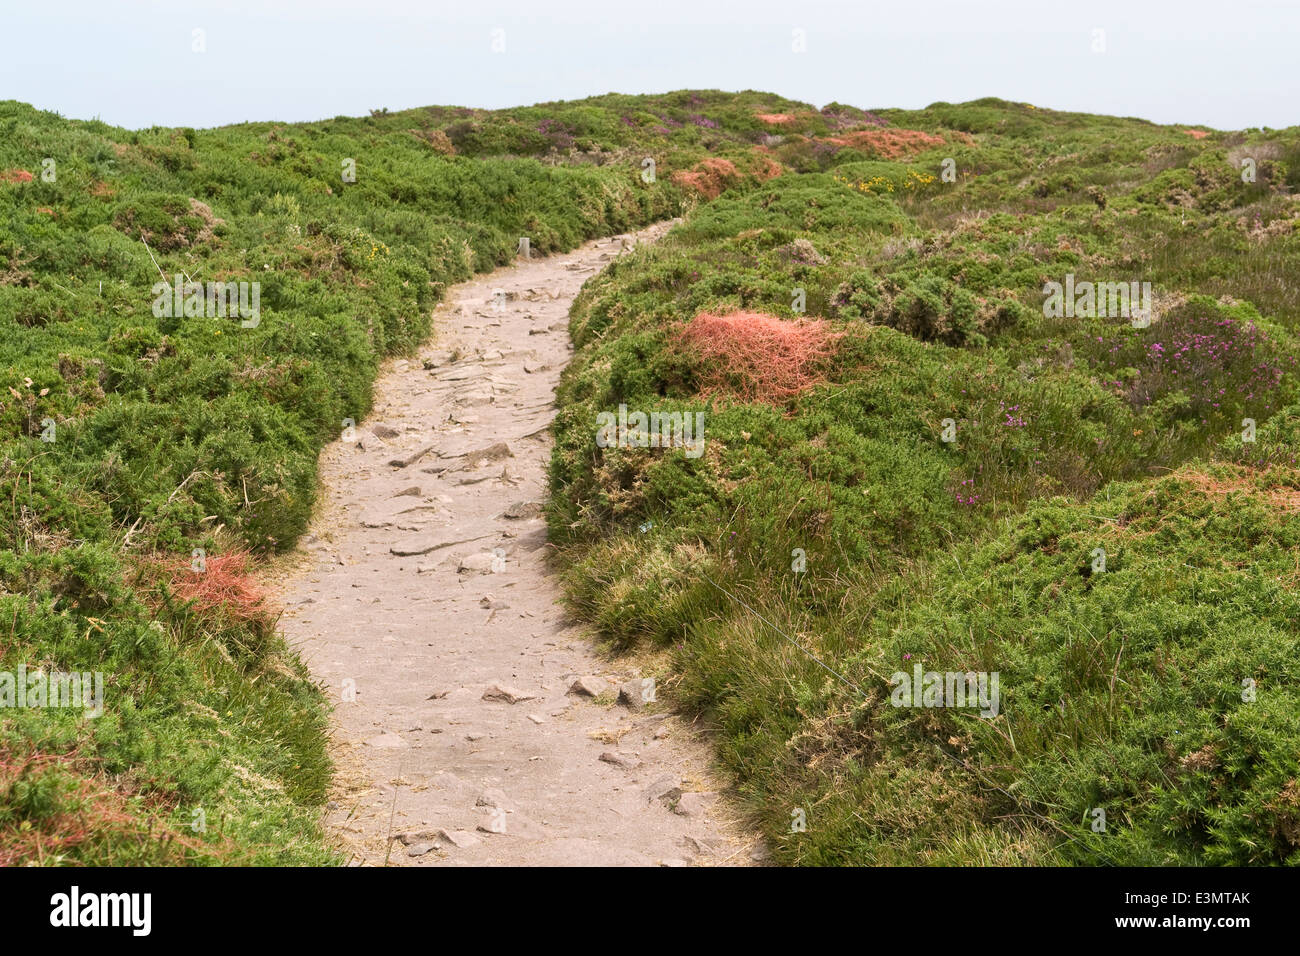 heathland with footpath at Cap Frehel in Brittany, France Stock Photo